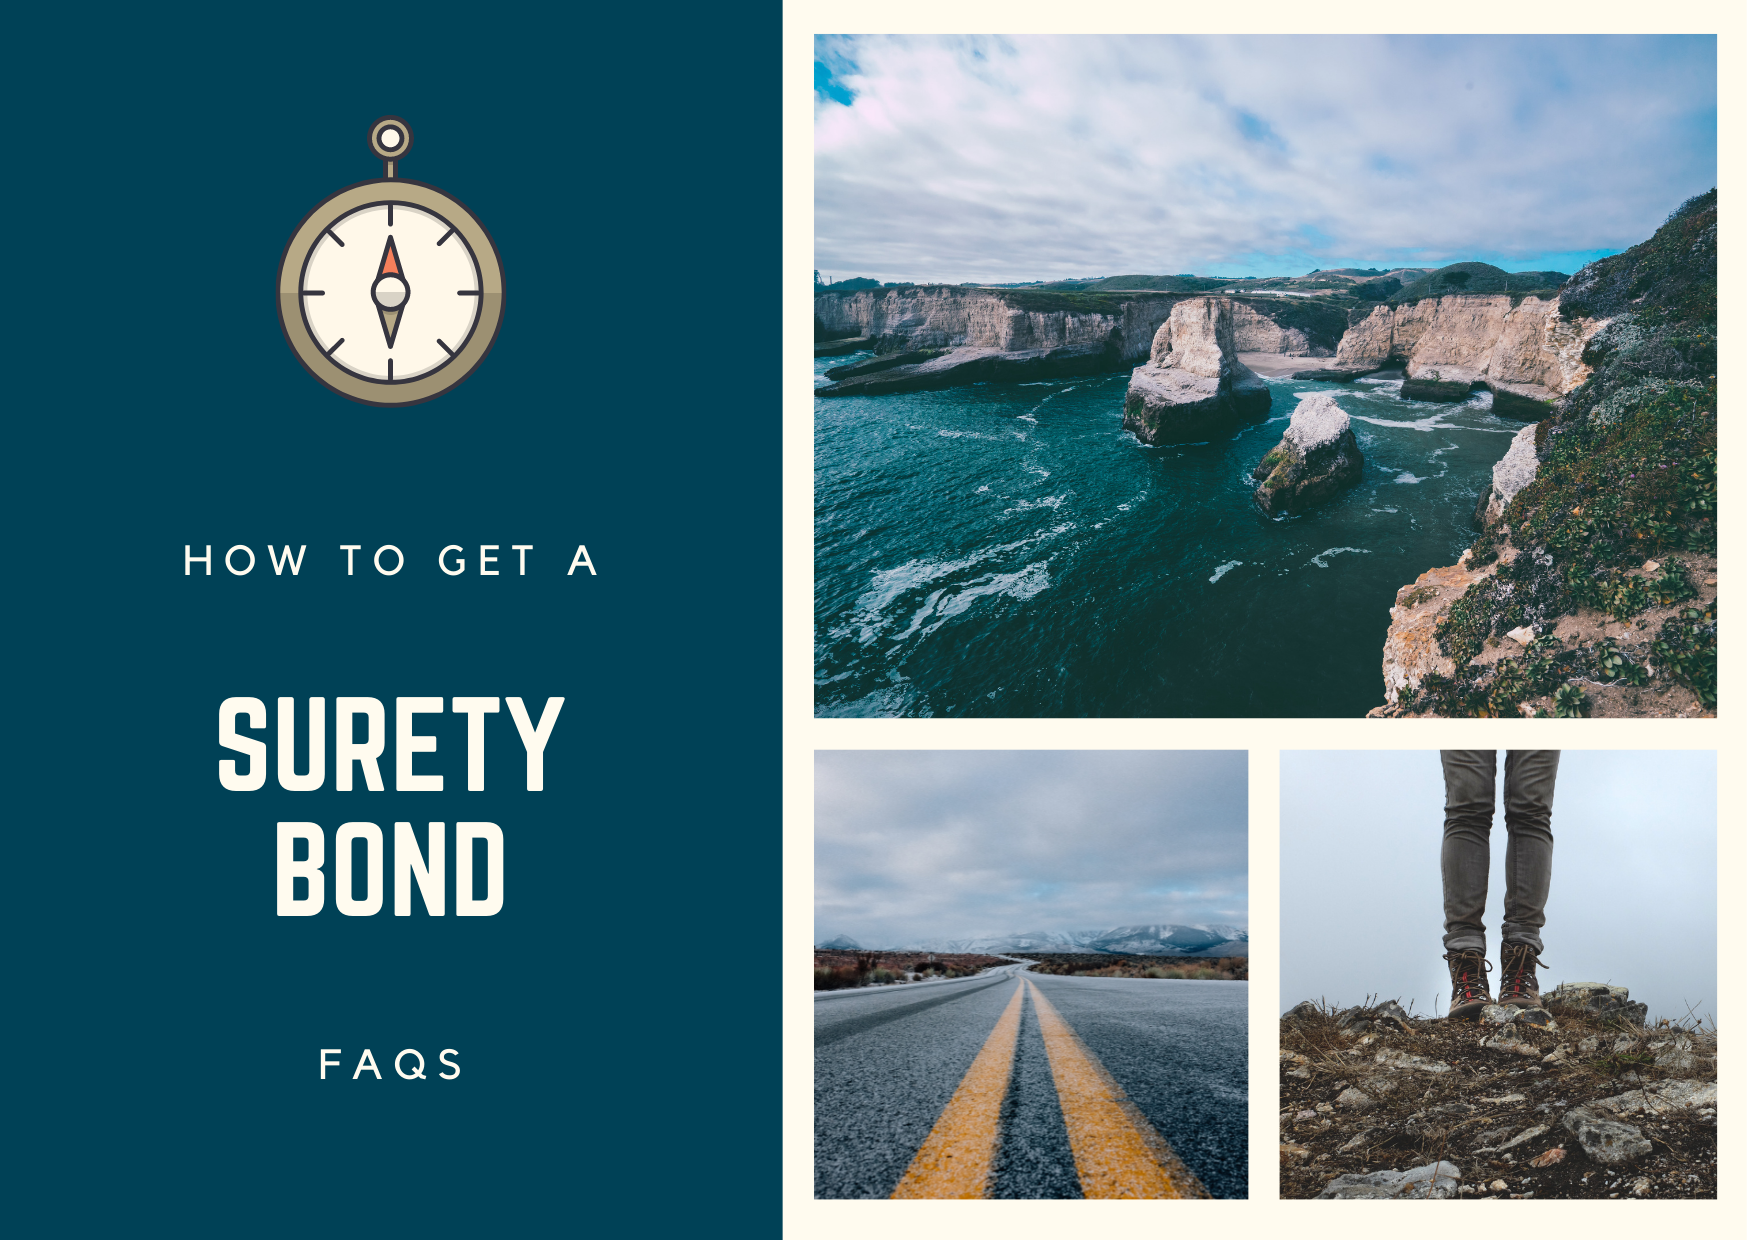 surety bonds - how do you get a surety bond - road and nature in blue shade